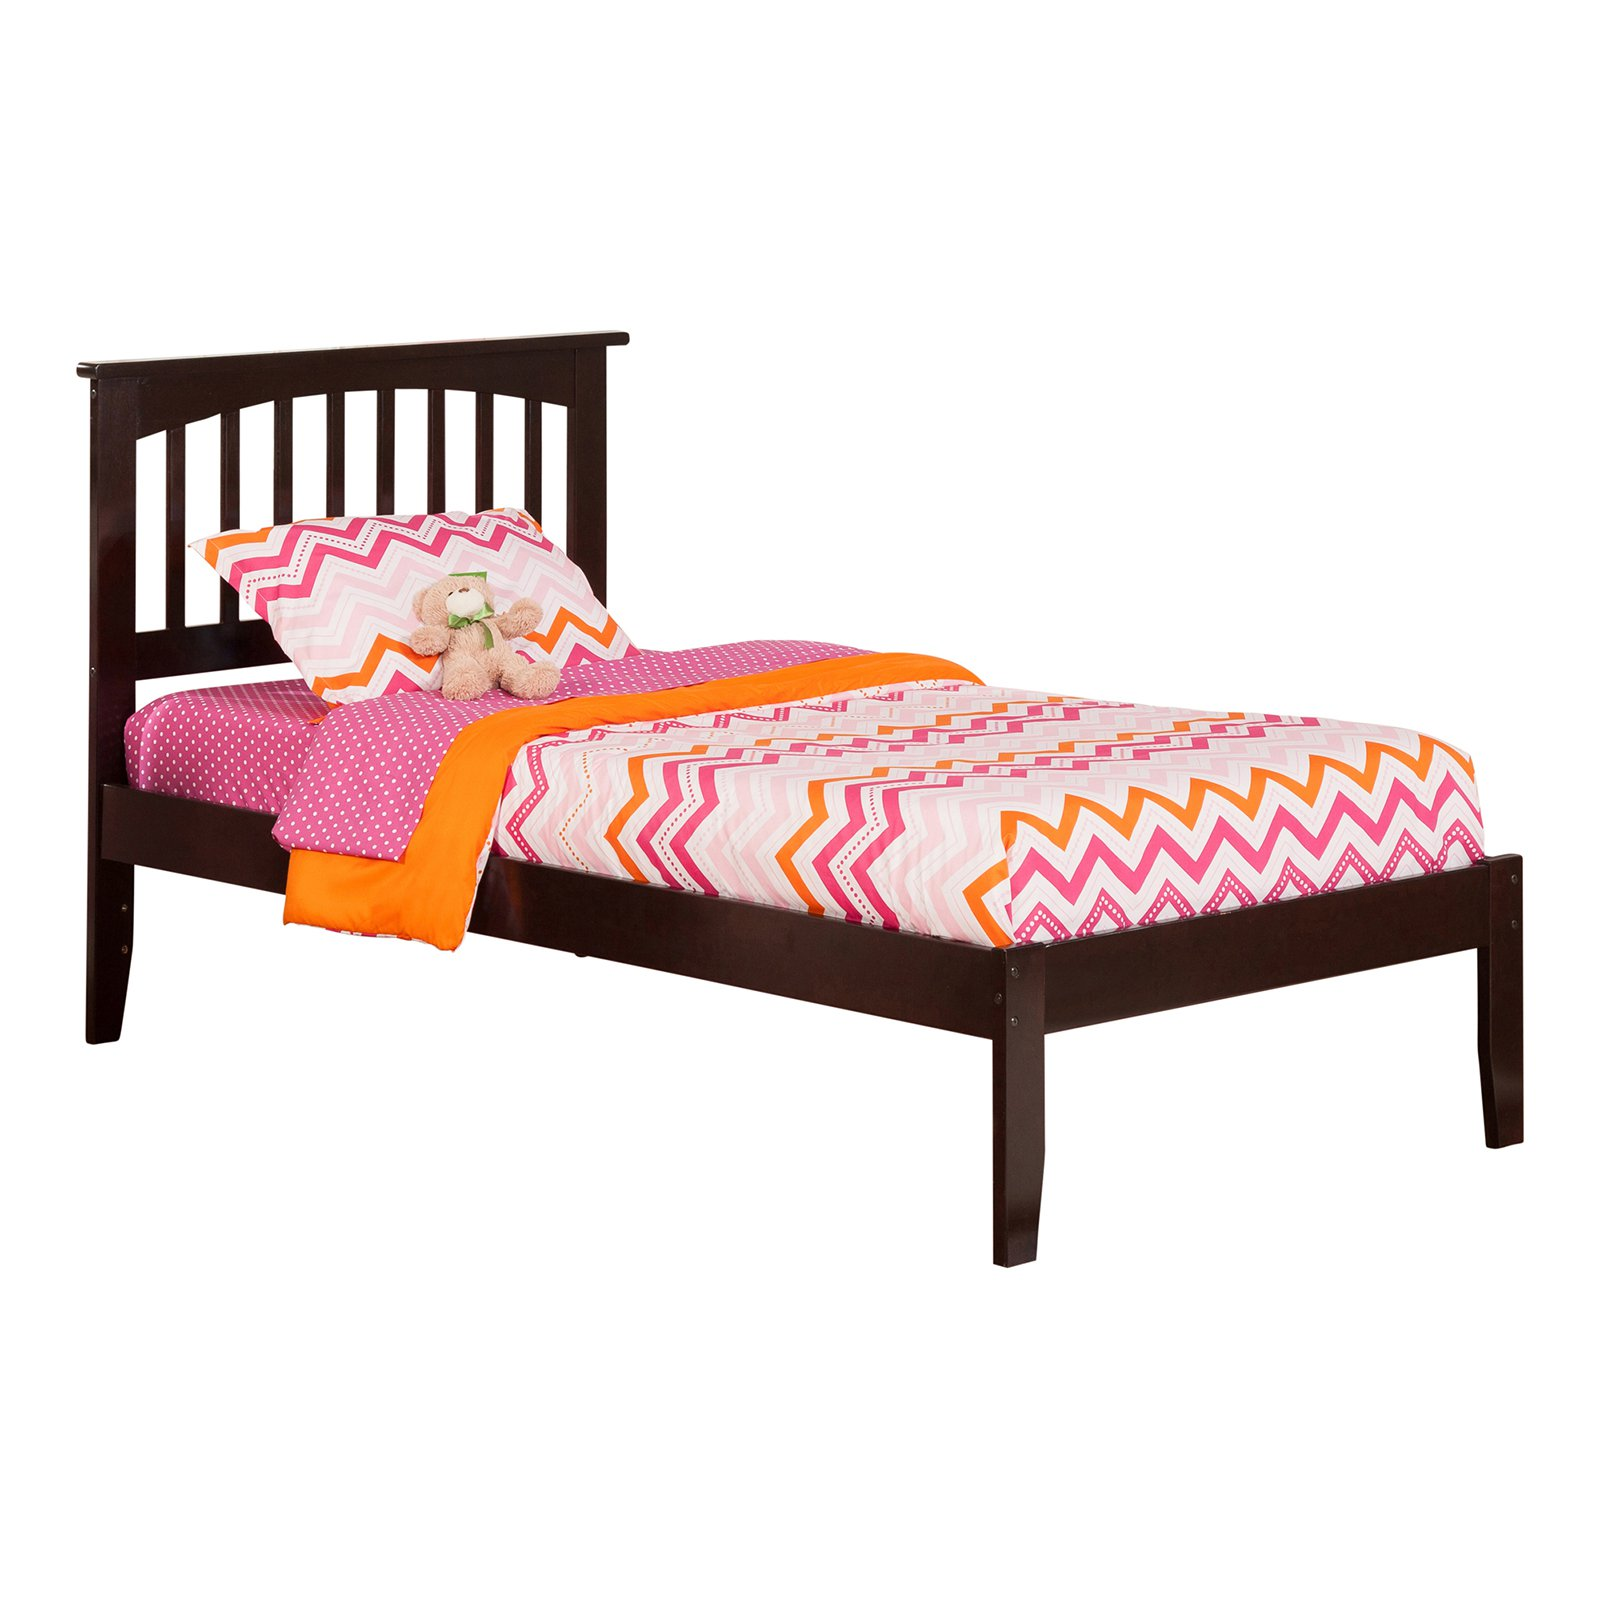 Mission Platform Bed with Open Foot Board in, in Multiple Colors and Sizes